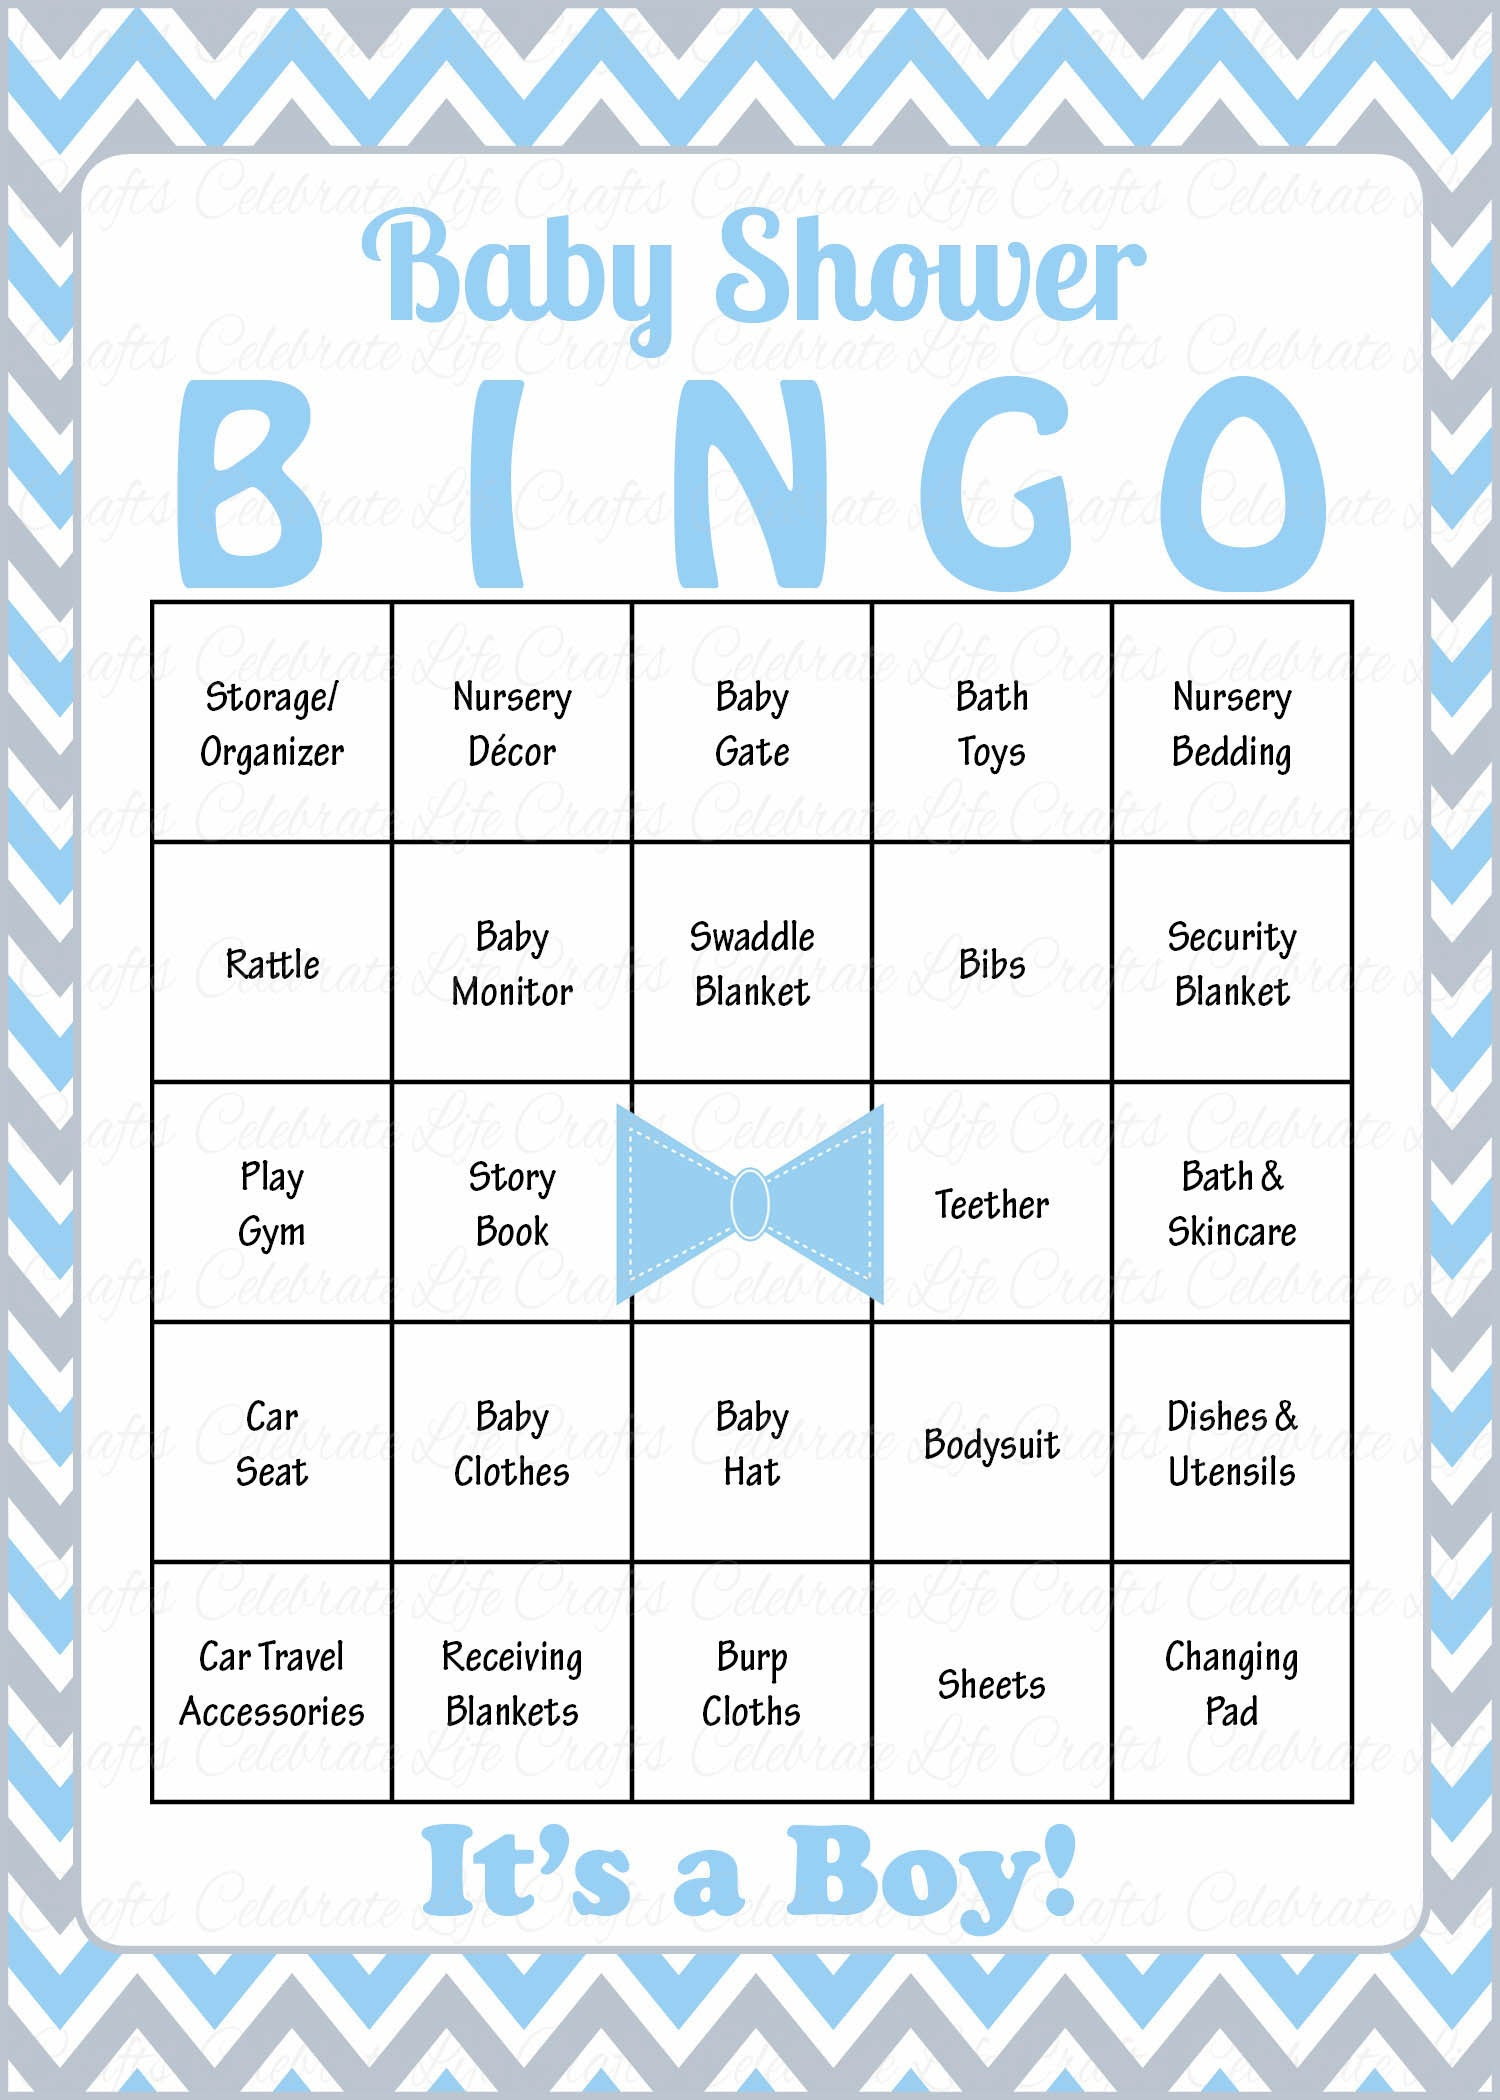 image relating to Musical Bingo Cards Printable identify Very little Person Child Bingo Playing cards - PRINTABLE Obtain